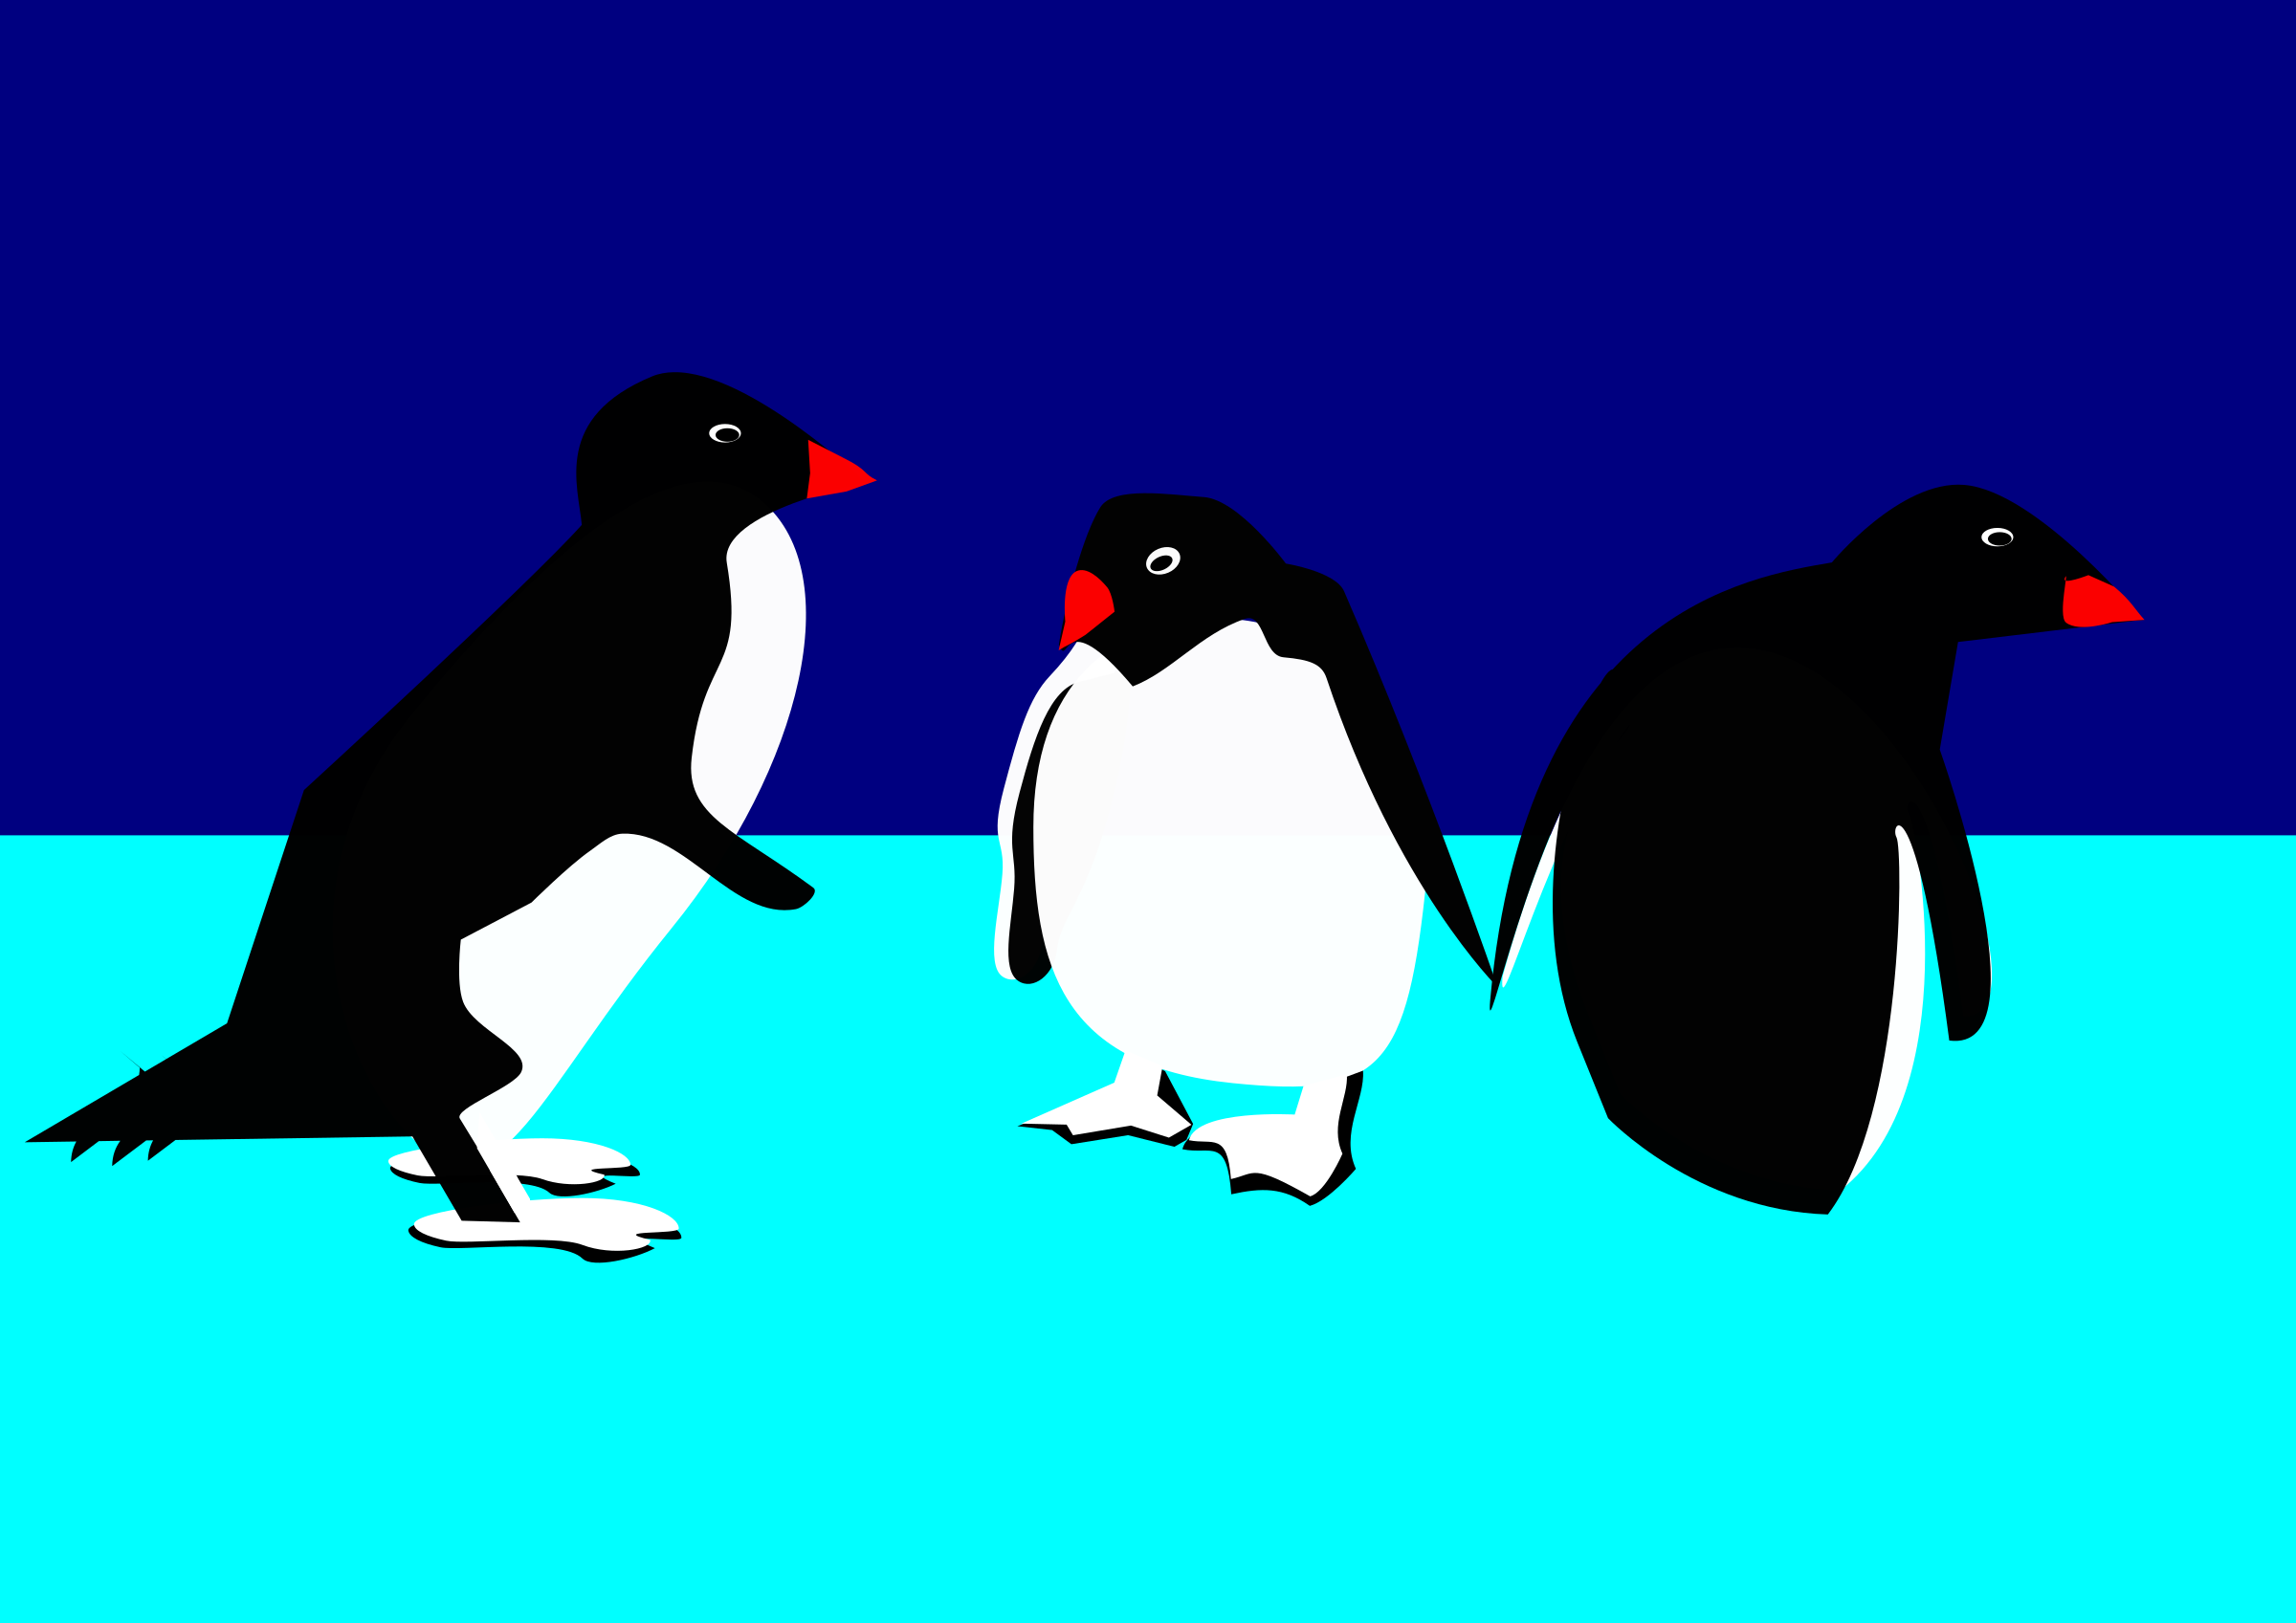 3 Pinguine auf Eis by user unknown